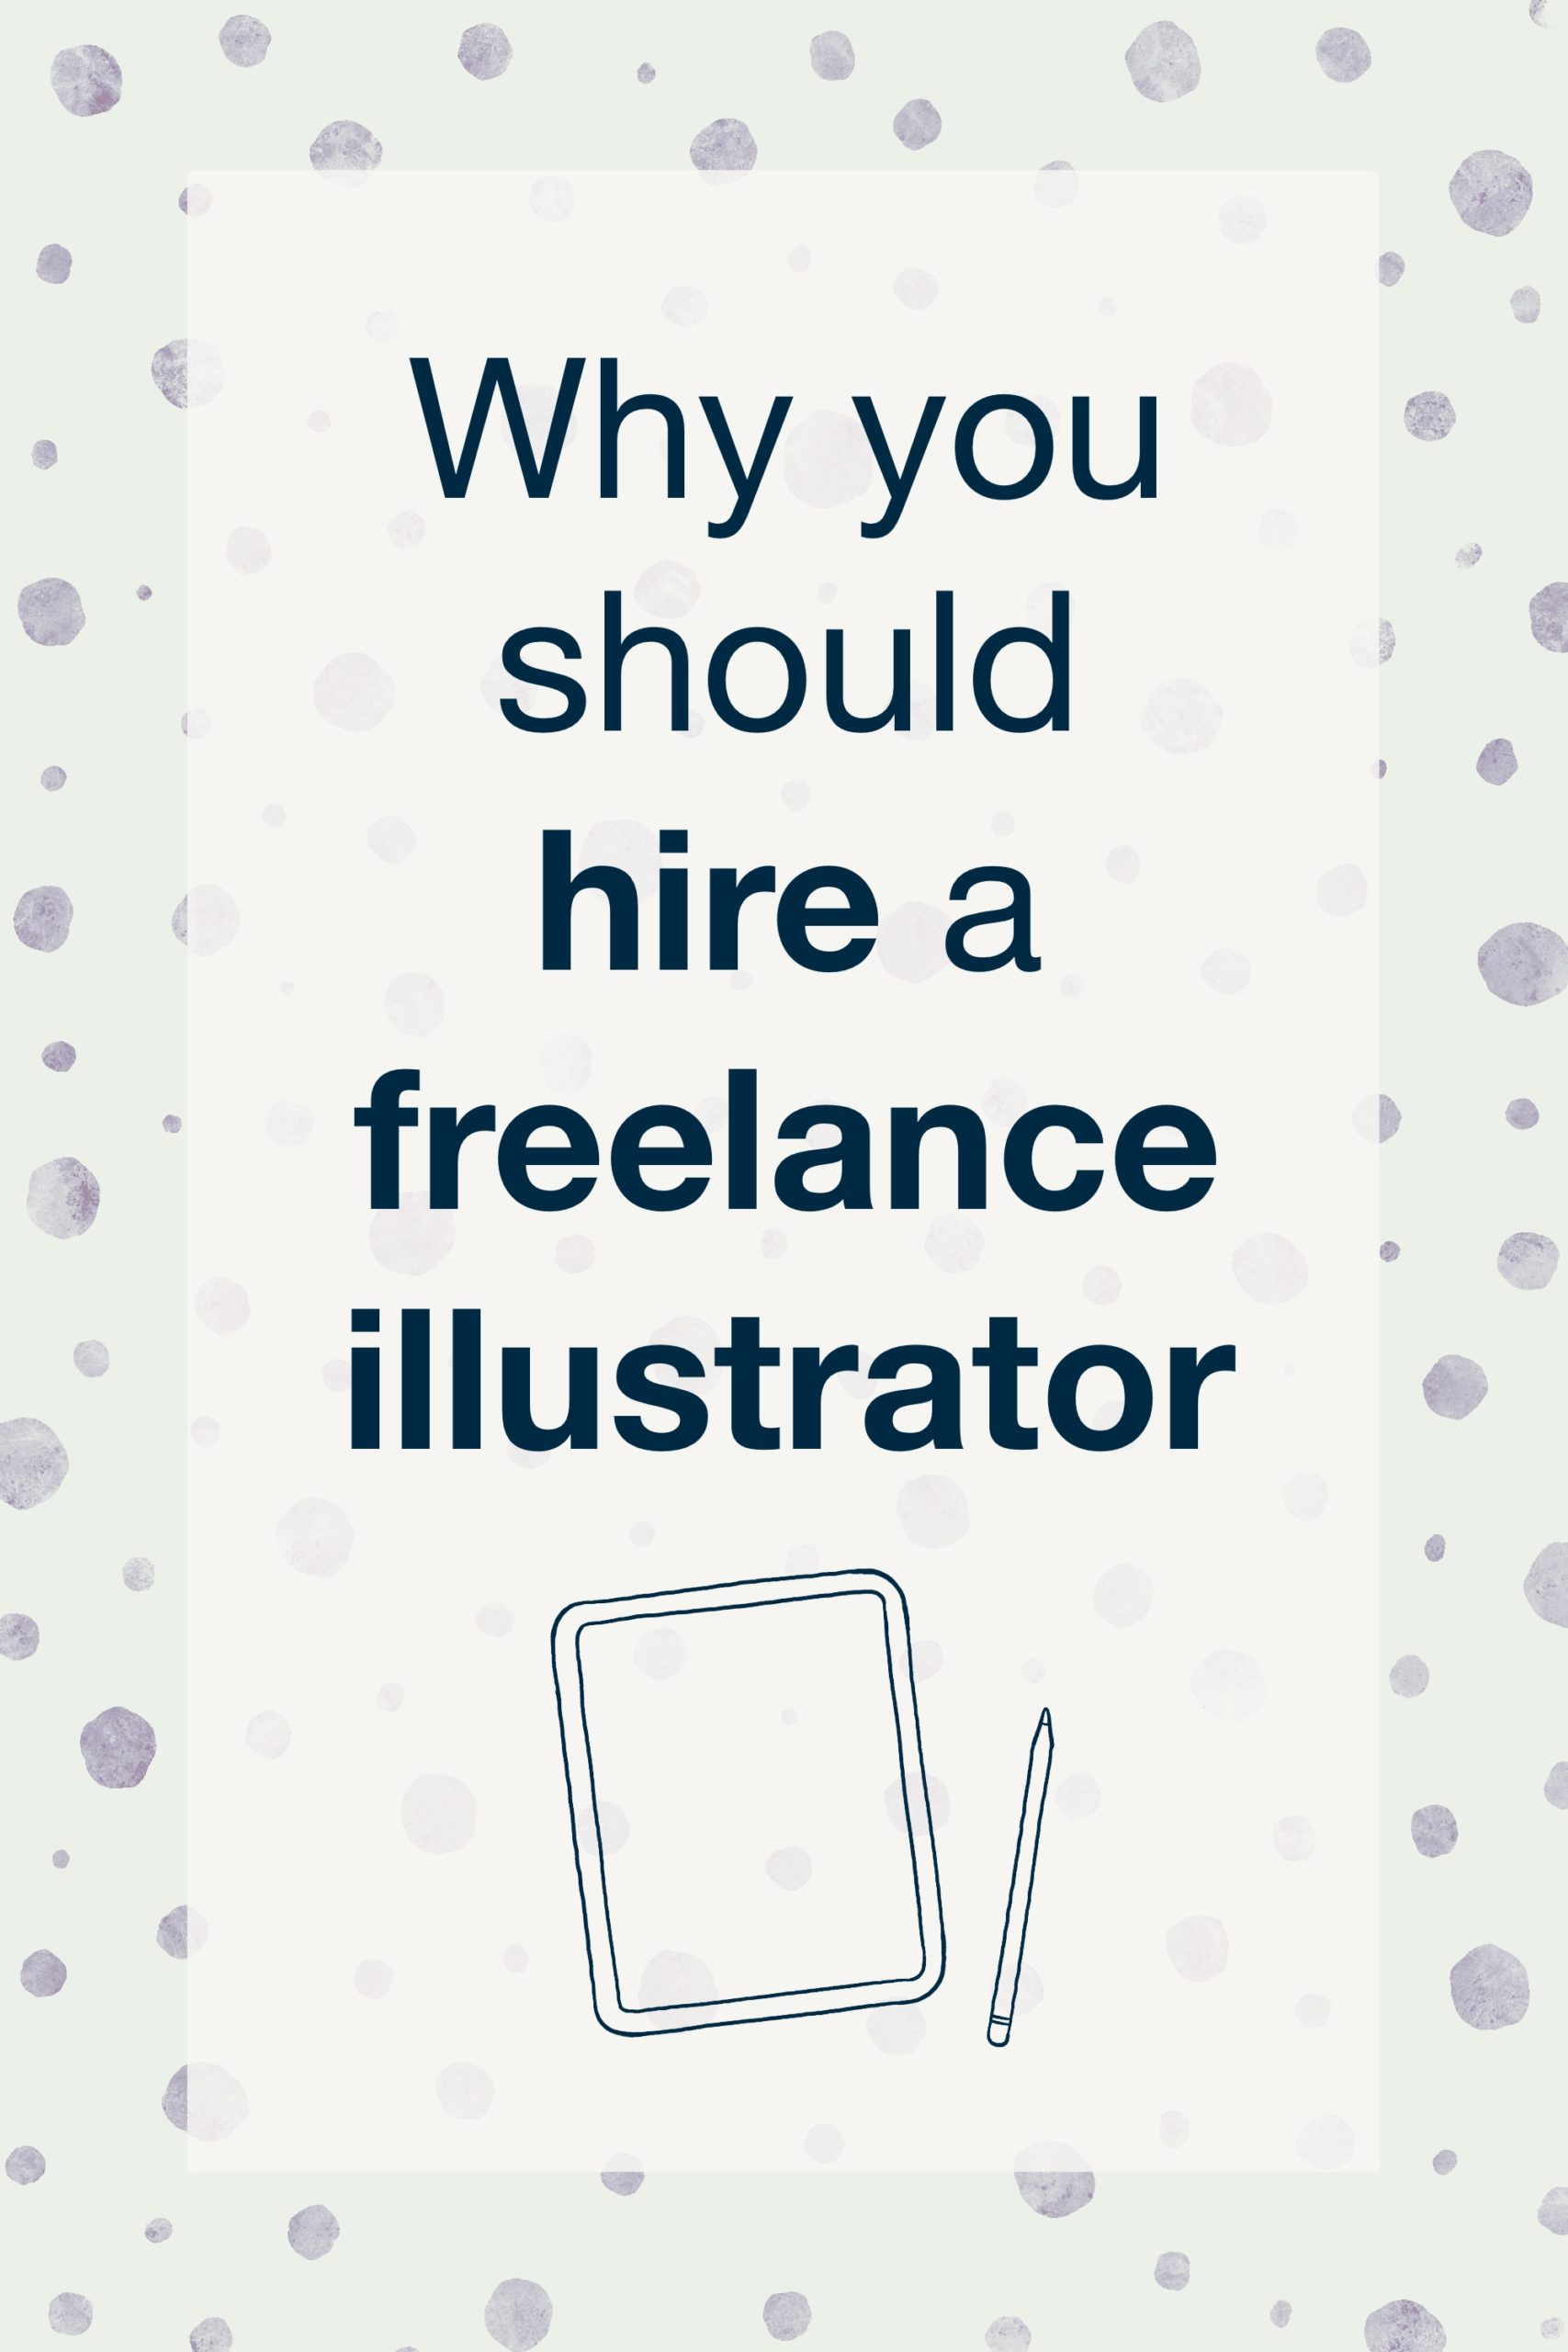 why you should hire a freelance illustrator